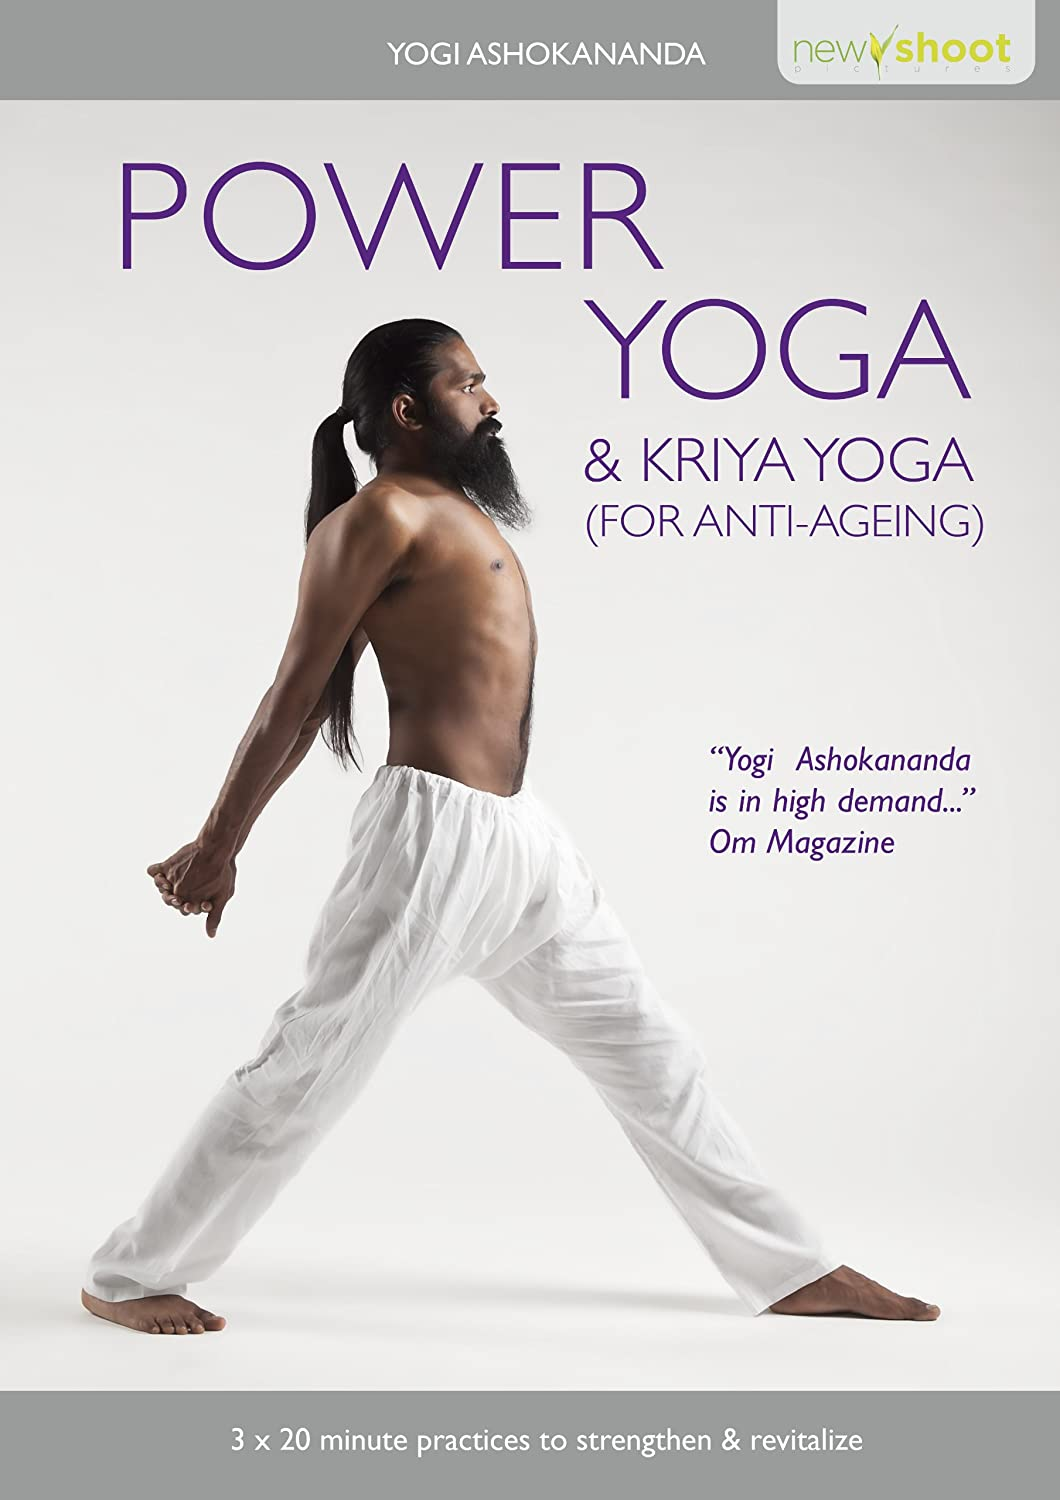 Amazon.com: Power Yoga & Kriya Yoga: Movies & TV